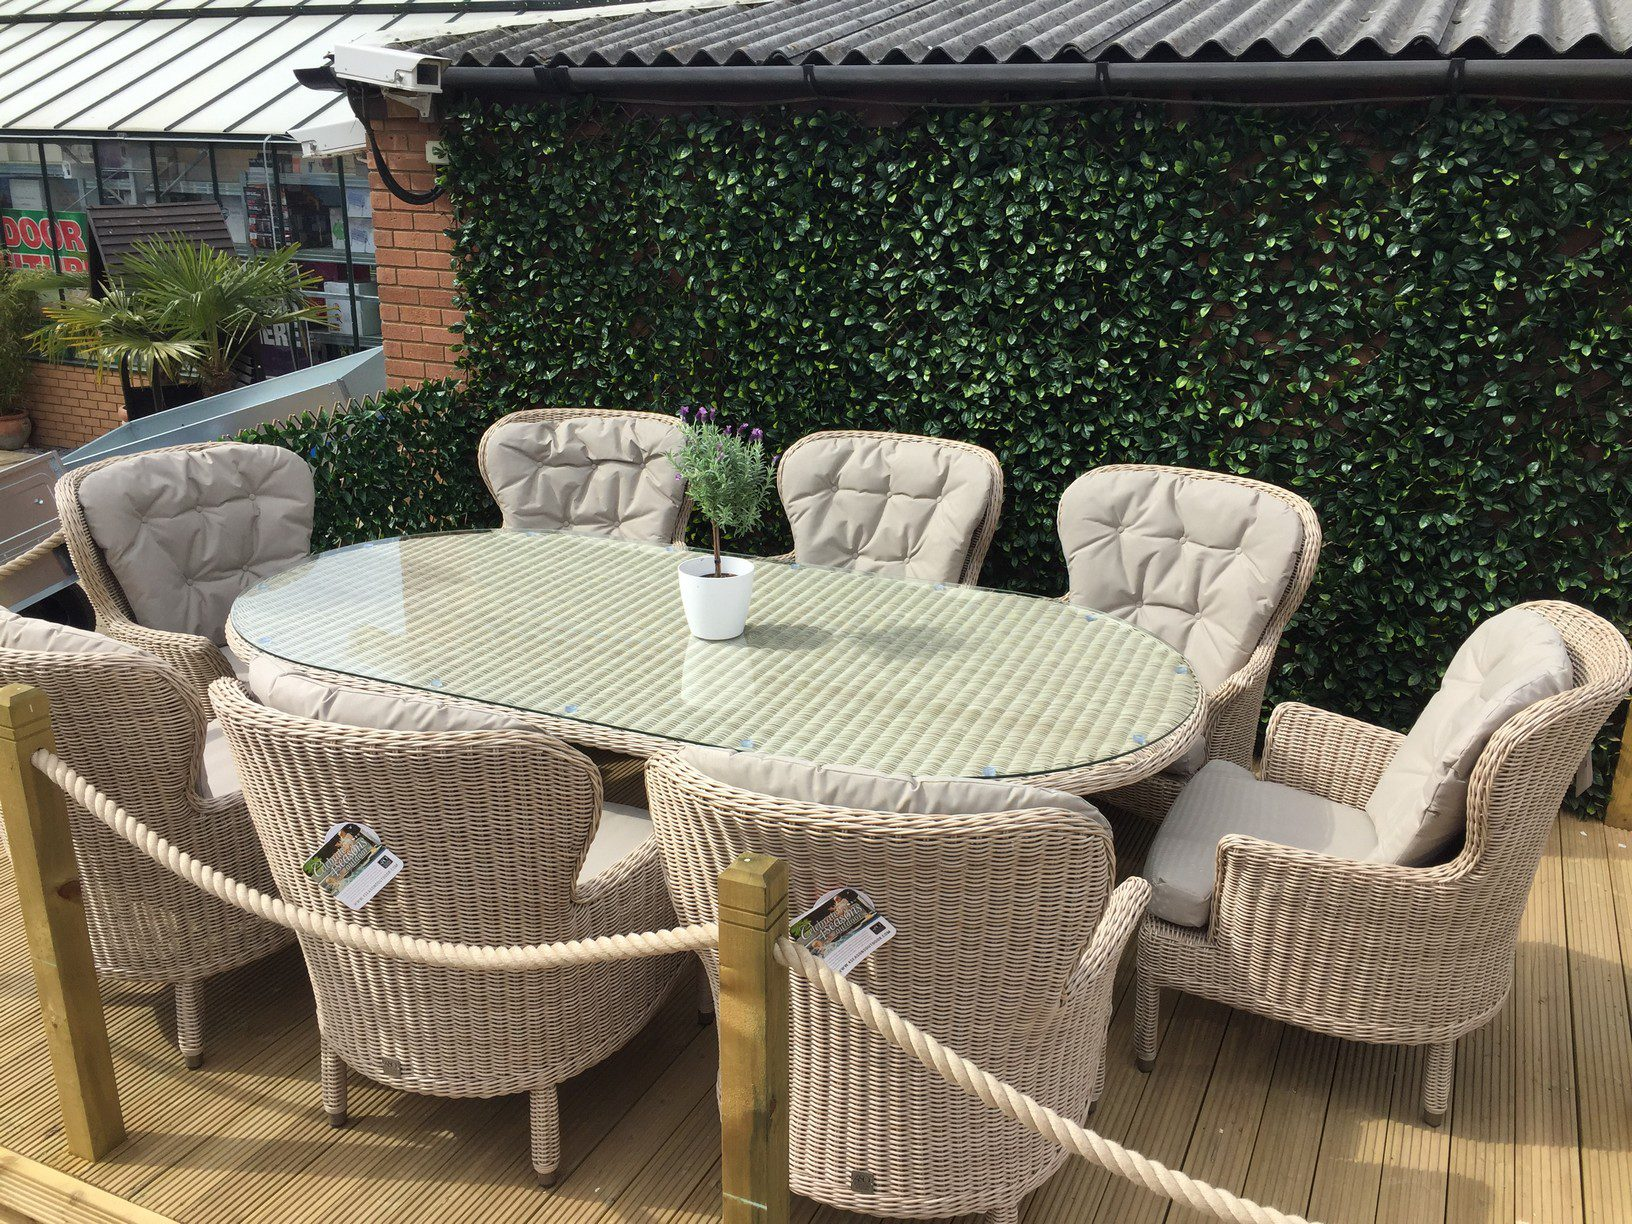 4 Seasons Outdoor Buckingham 8 Seat Oval Set Praia Weave 10